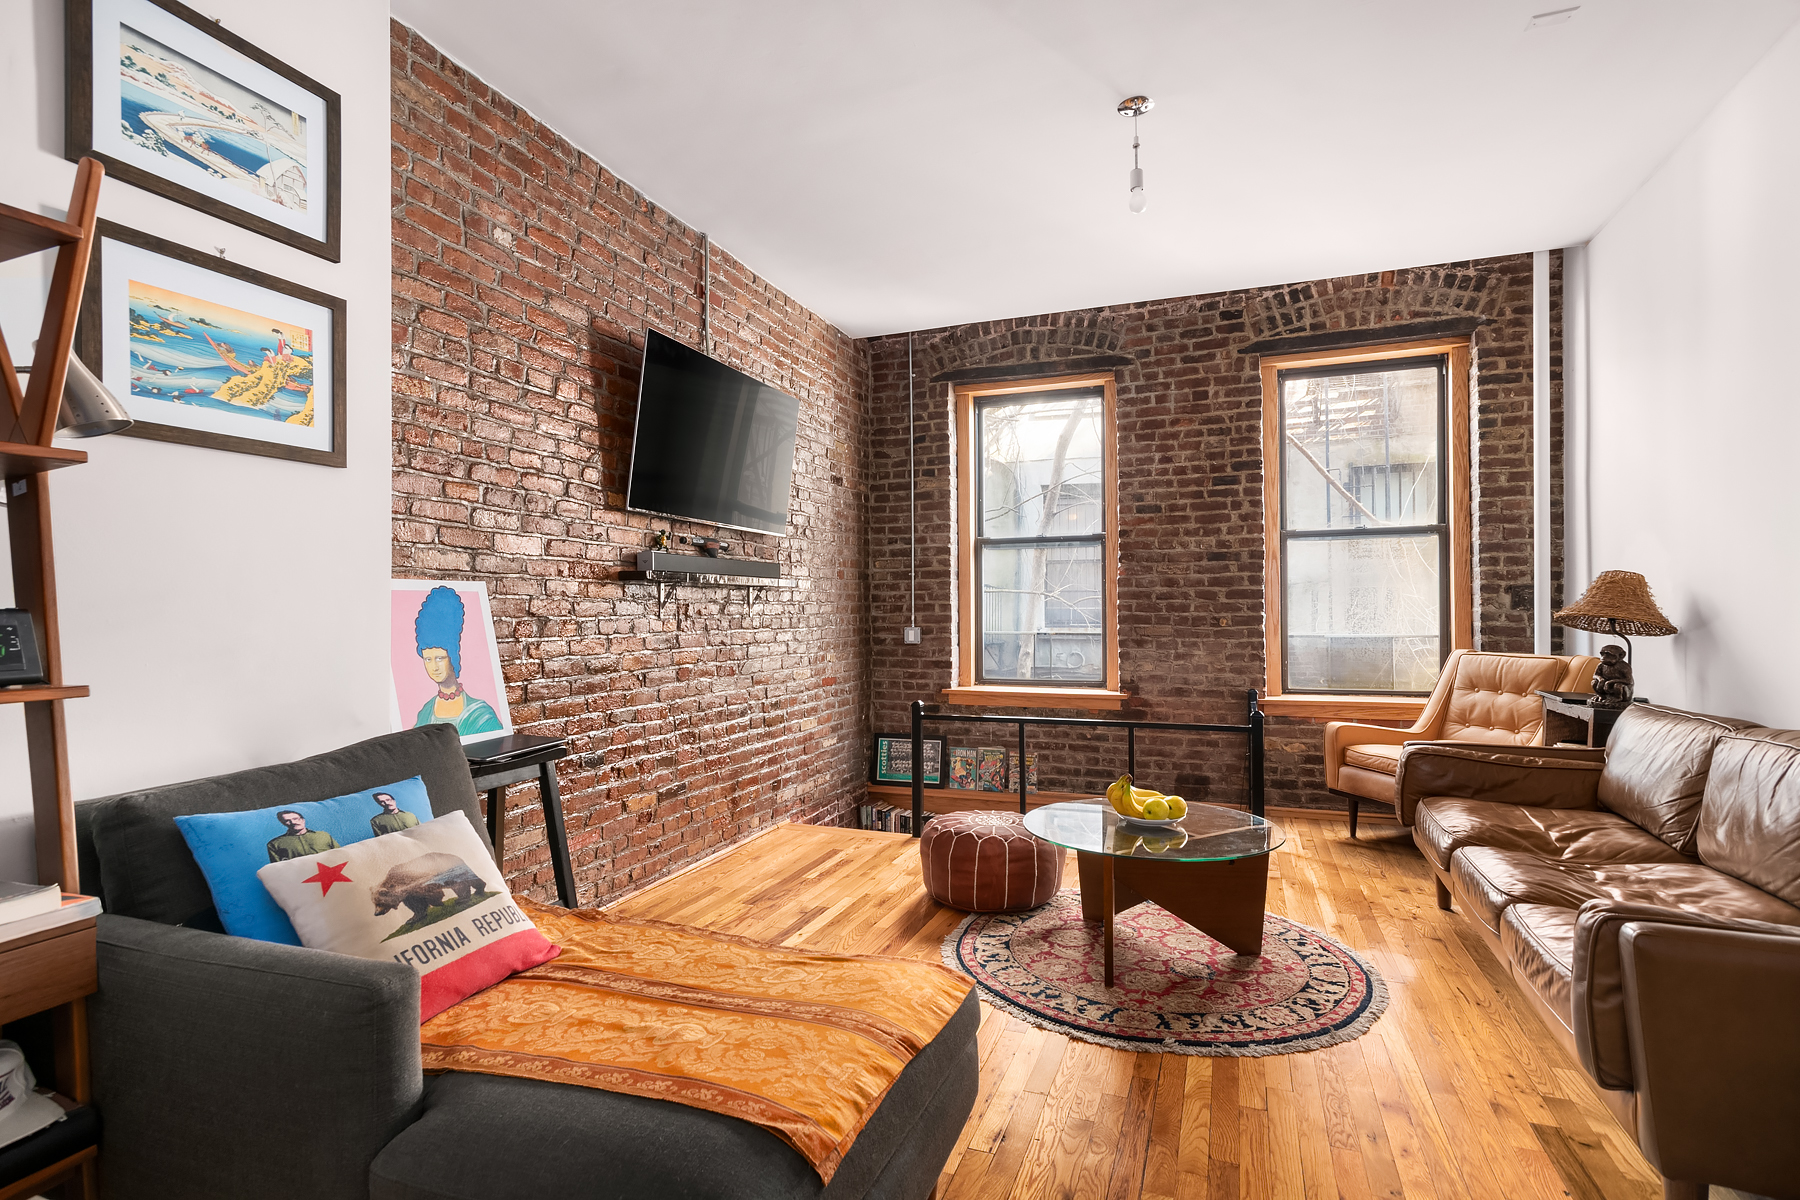 A living area with exposed brick, hardwood floors, and a brown leather couch.